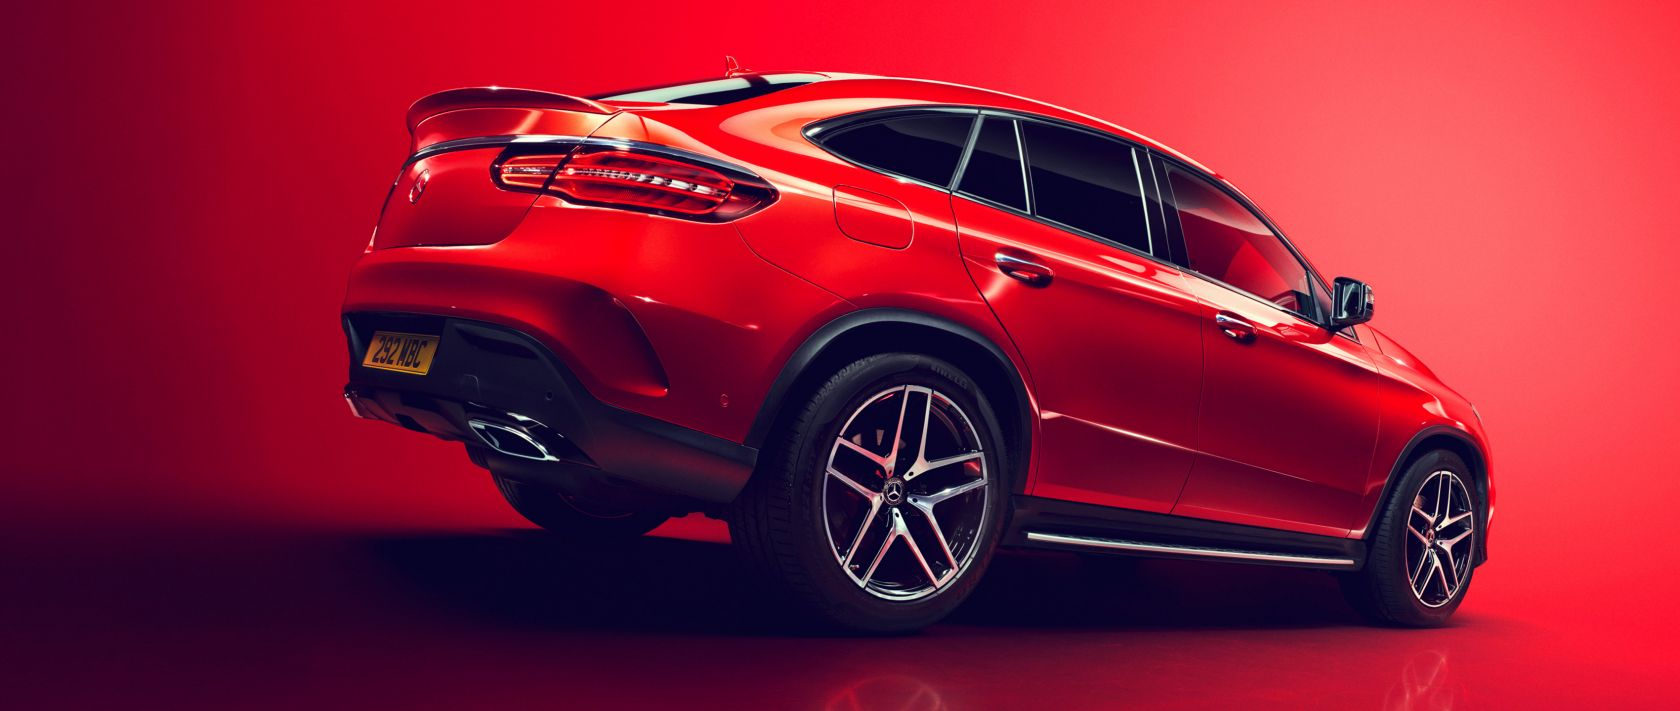 The Mercedes-Benz GLE 350 d 4MATIC Coupé in red with red background.